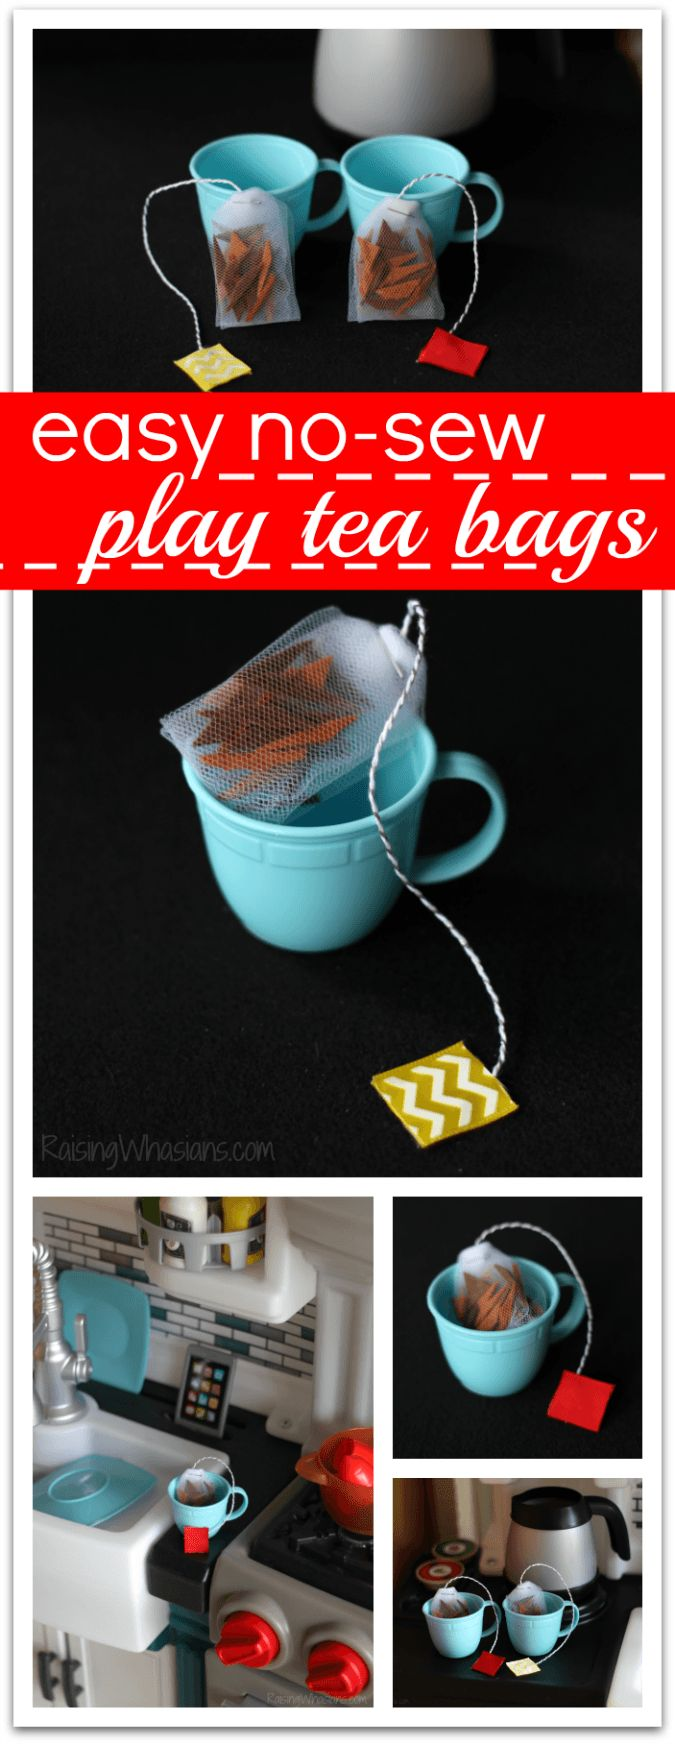 No sew play tea bags tutorial (featuring the Step2 Grand Luxe Kitchen)